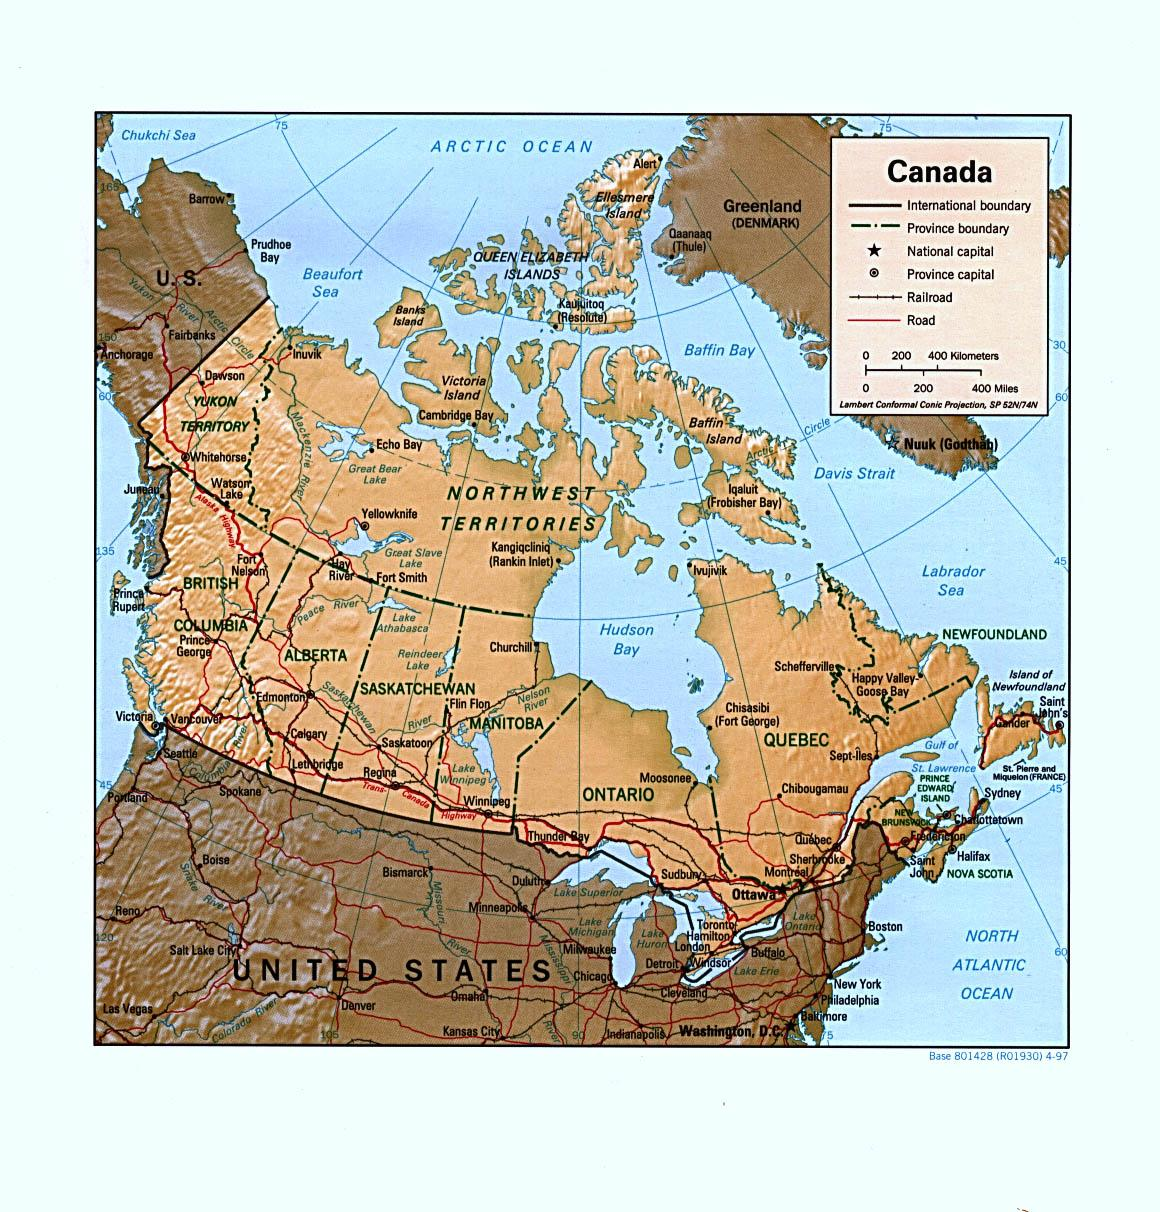 Show Map Of Canada With Its Provinces.Canada Provinces Map With Capitals Show Map Of Canada With Its